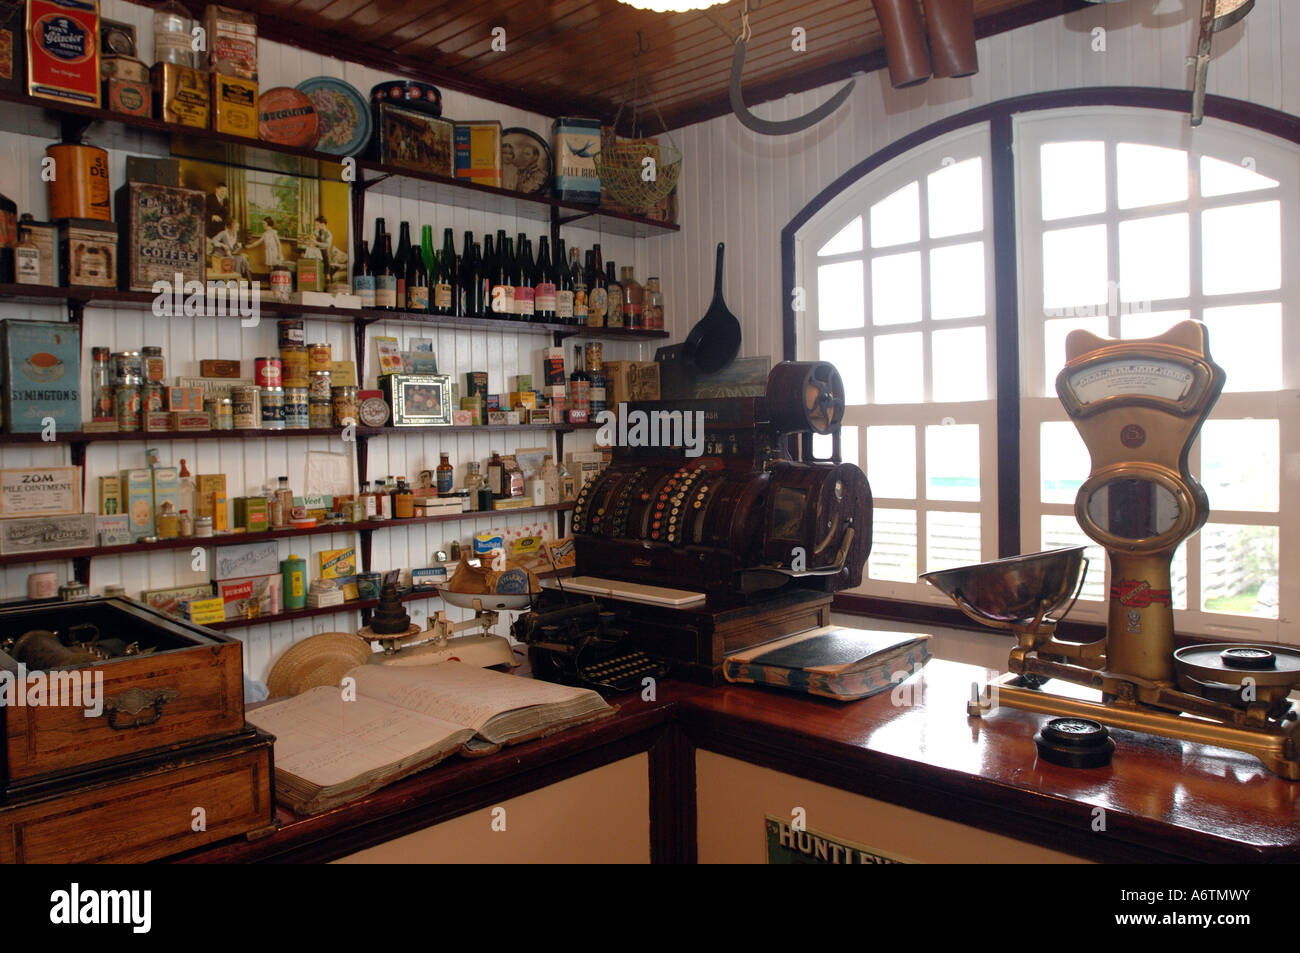 Falkland Islands Shop Stockfotos & Falkland Islands Shop Bilder - Alamy